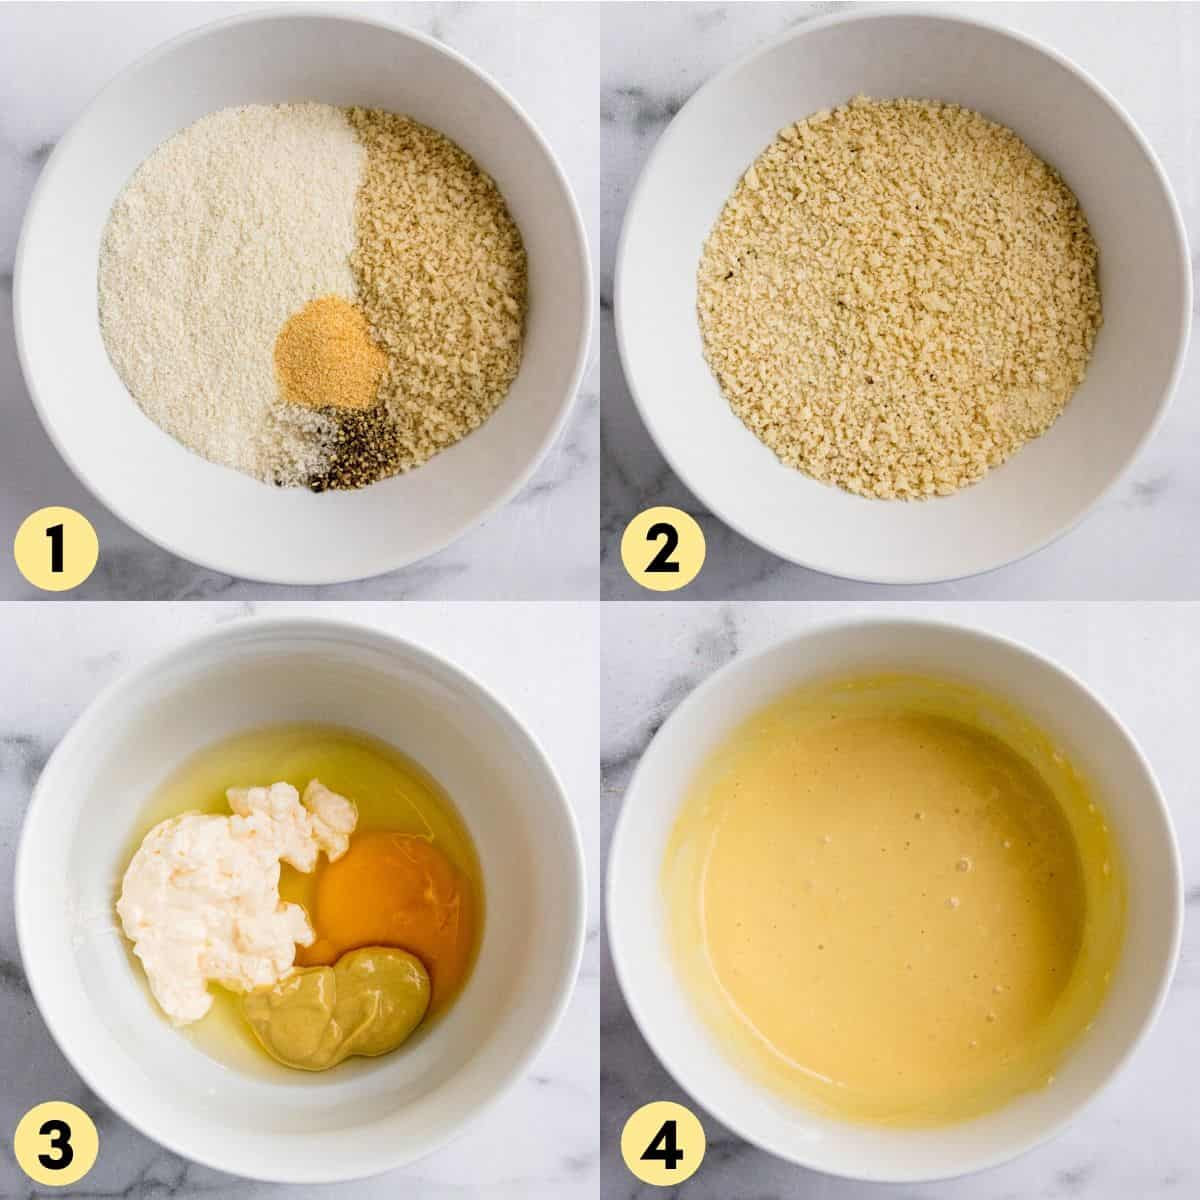 Panko mixture in bowl and egg mixture for breading.